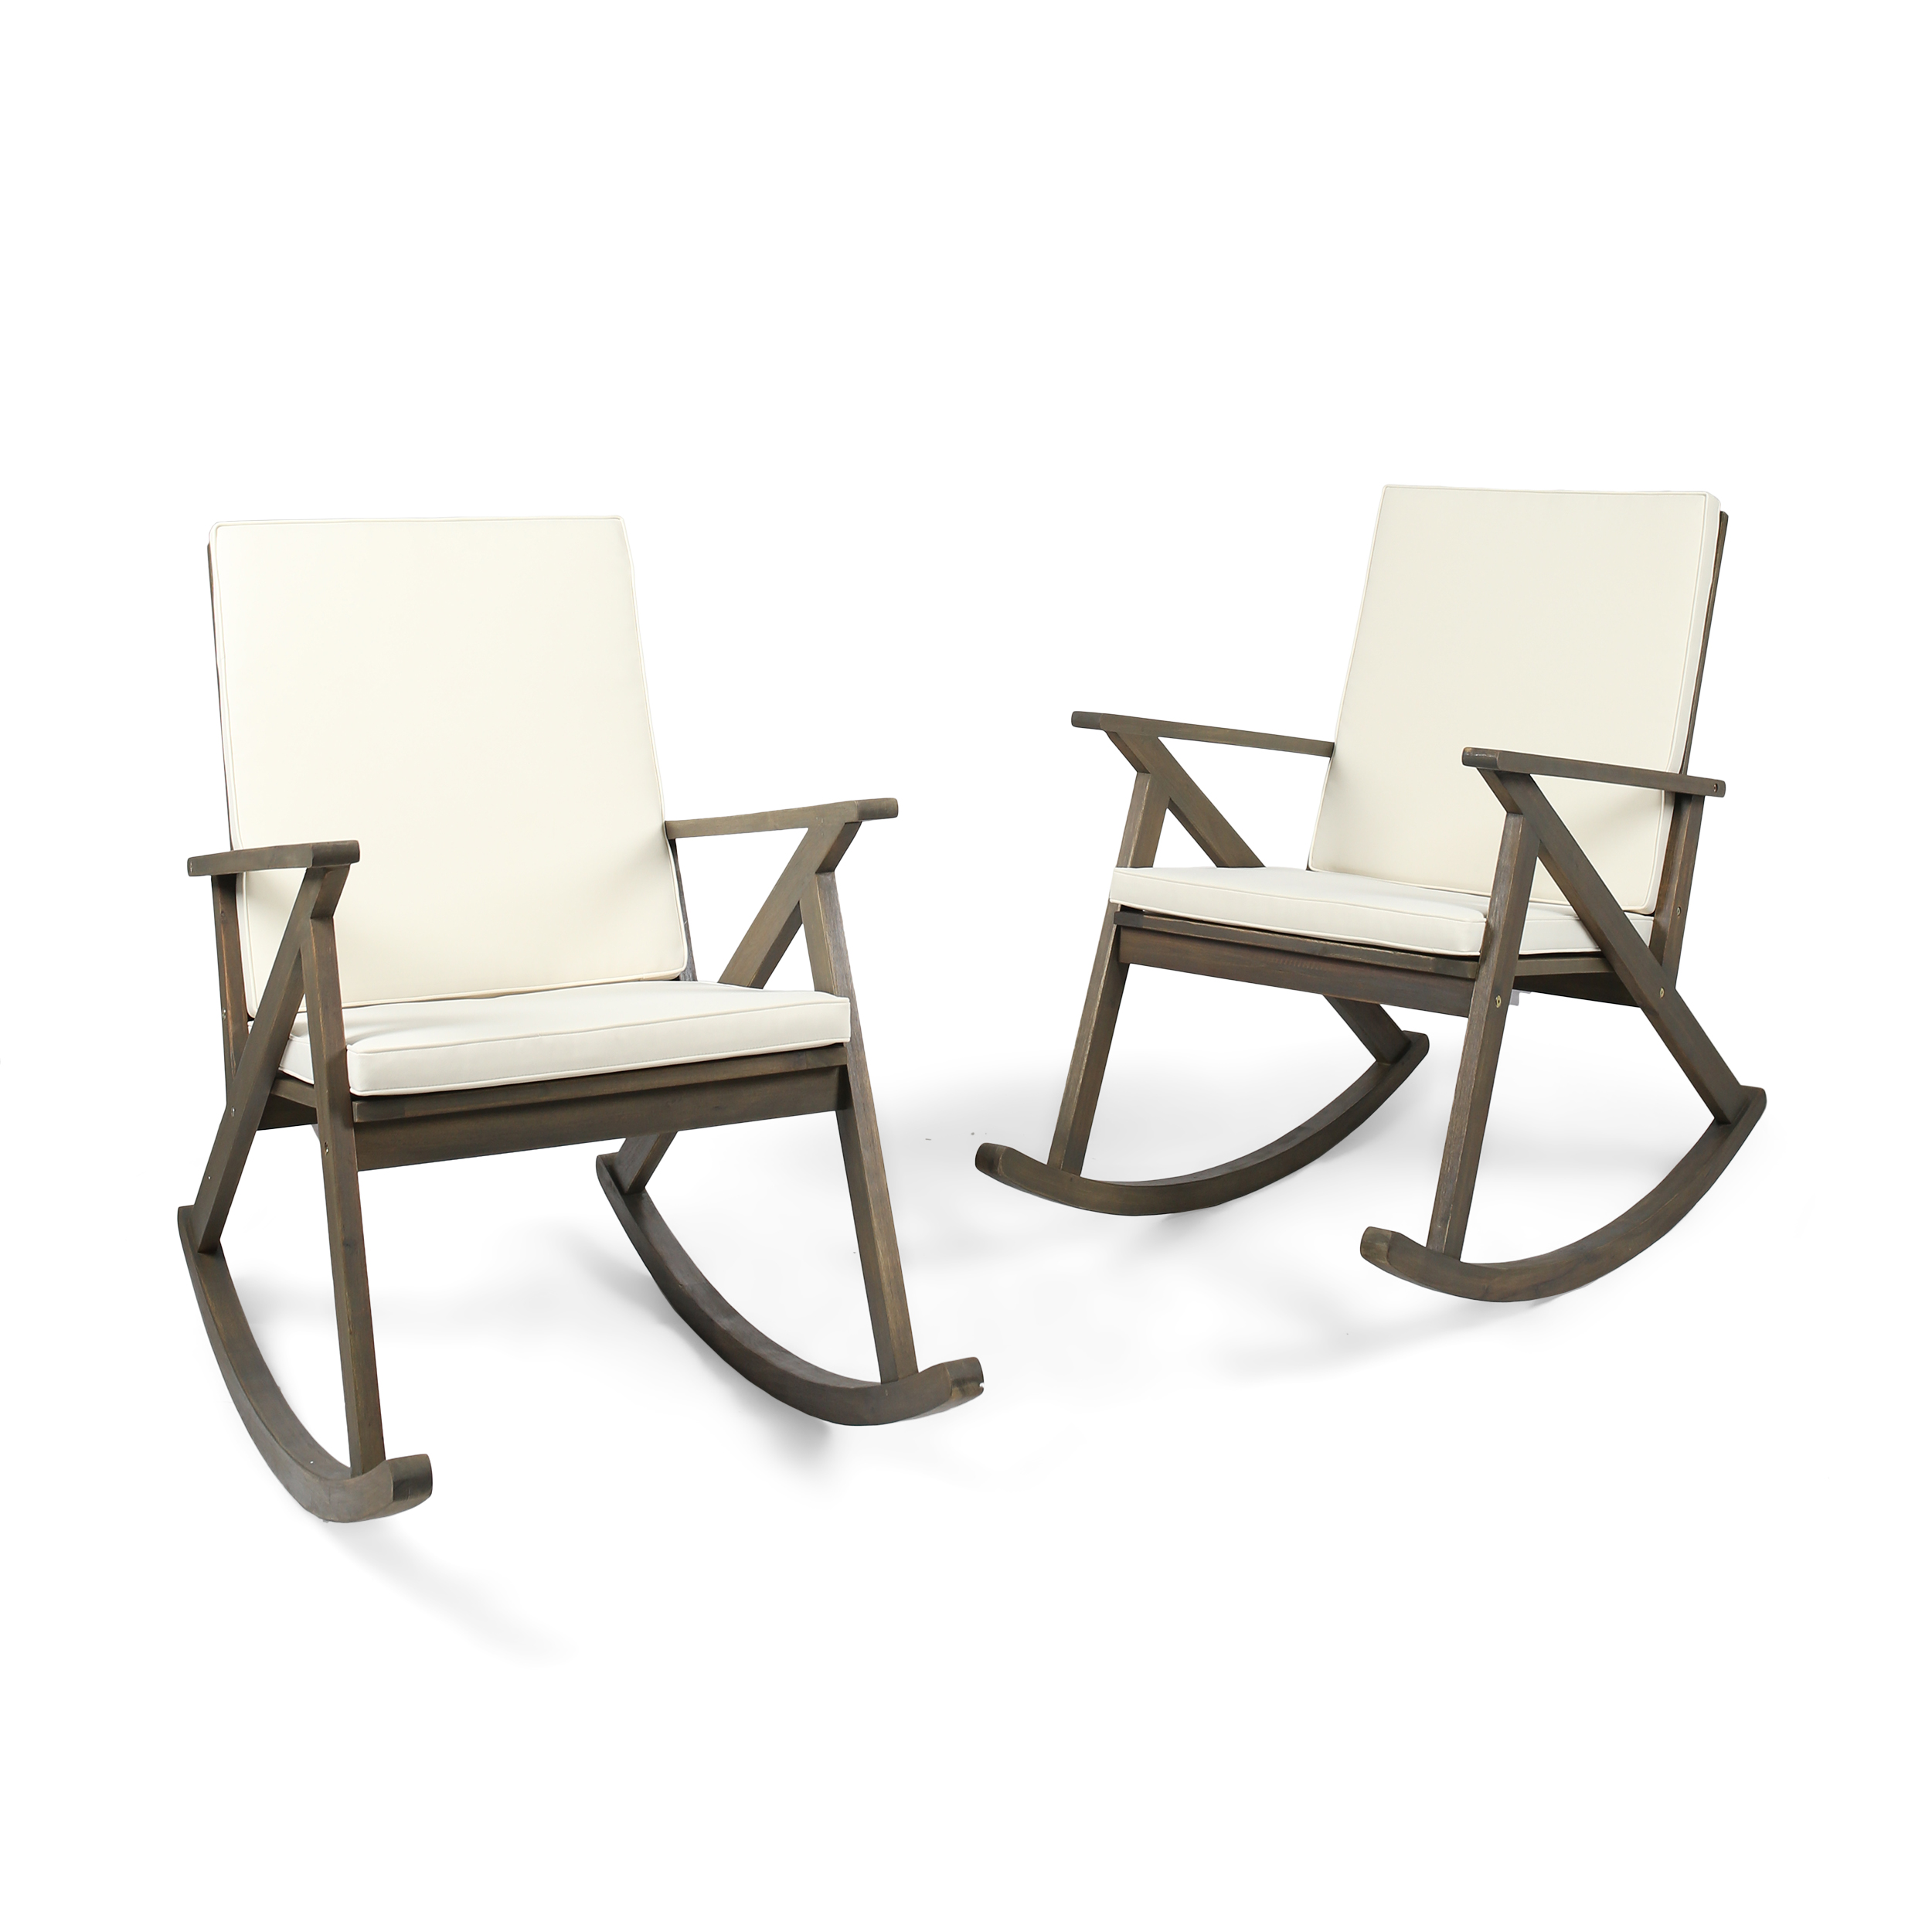 Louise Outdoor Acacia Wood Rocking Chair With Cushion Set Of 2 Grey And Cream